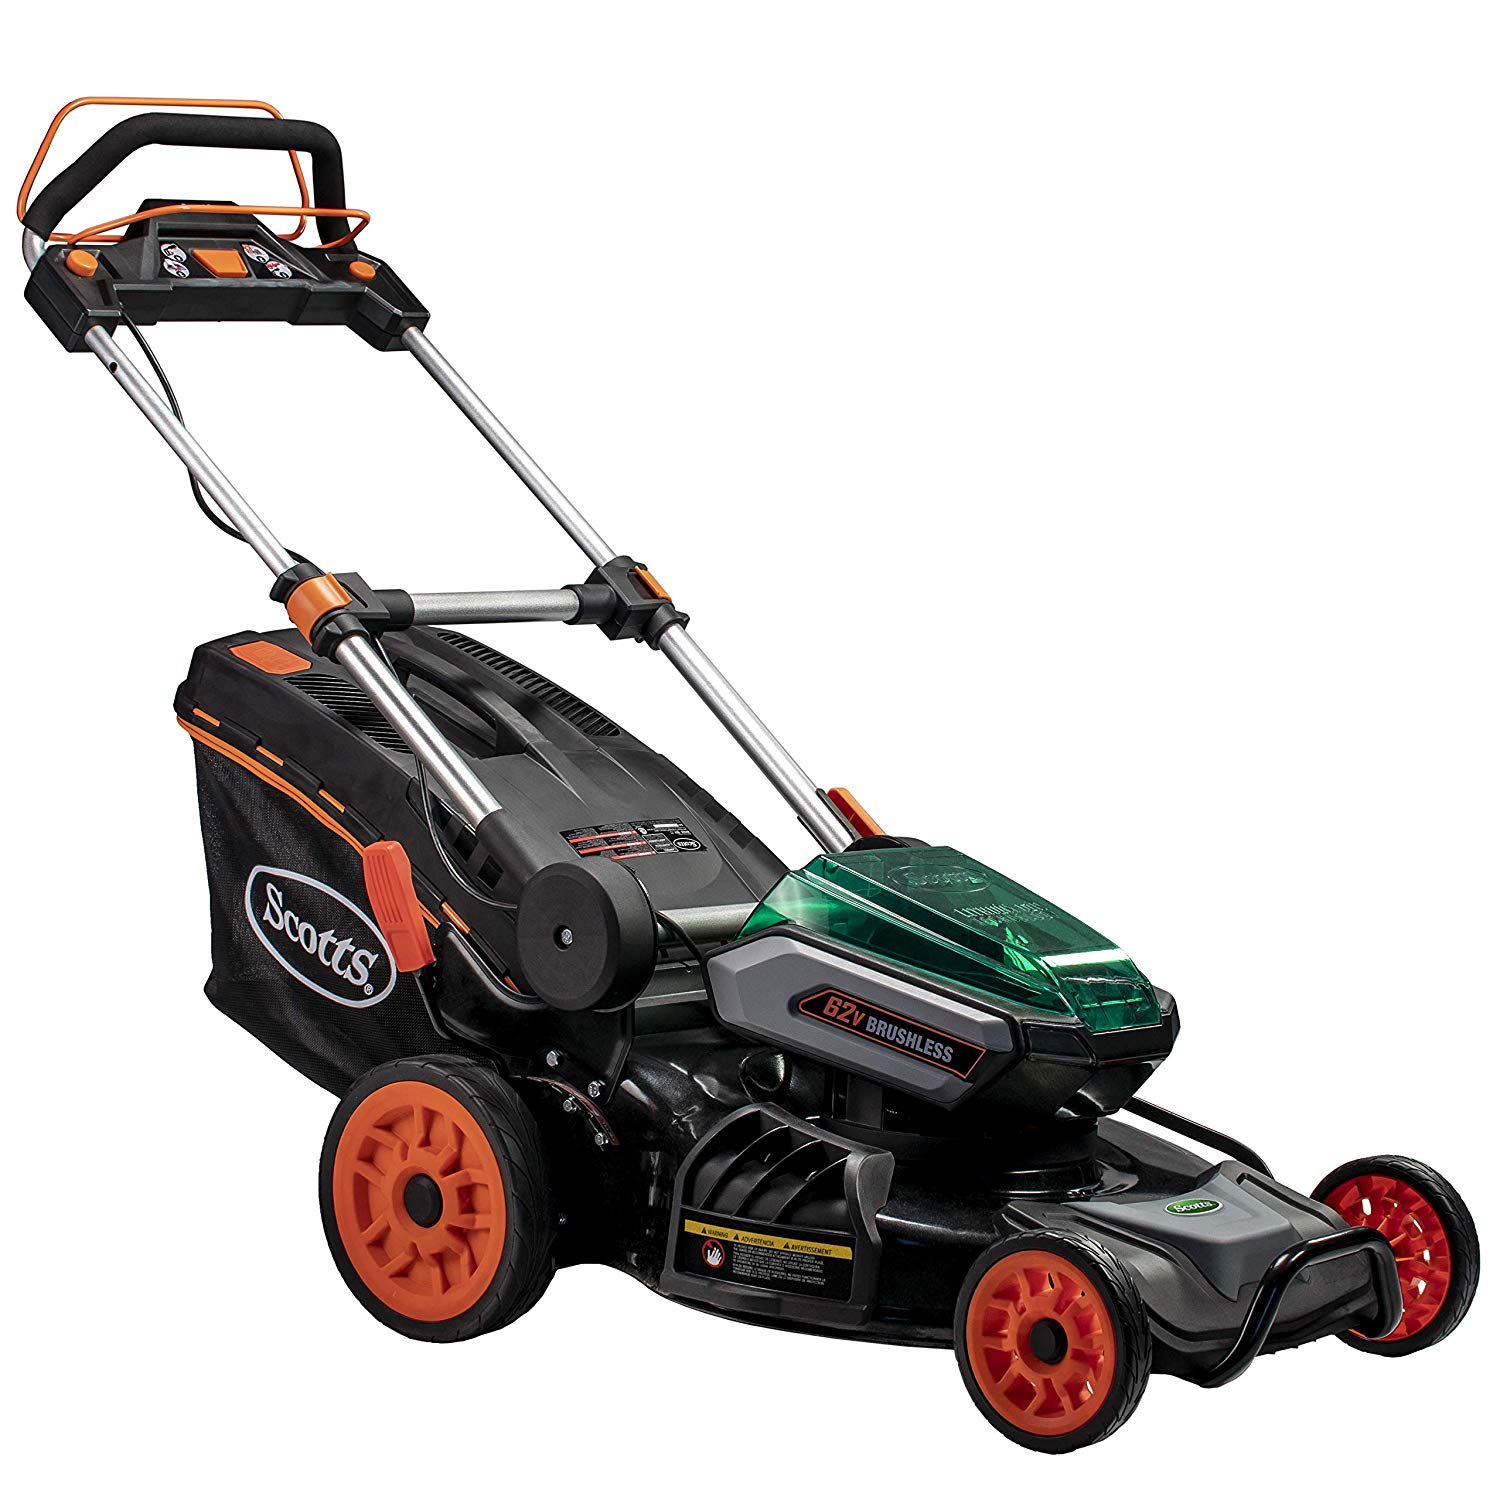 Scotts 60362S Cordless Self-Propelled Lawn Mower review